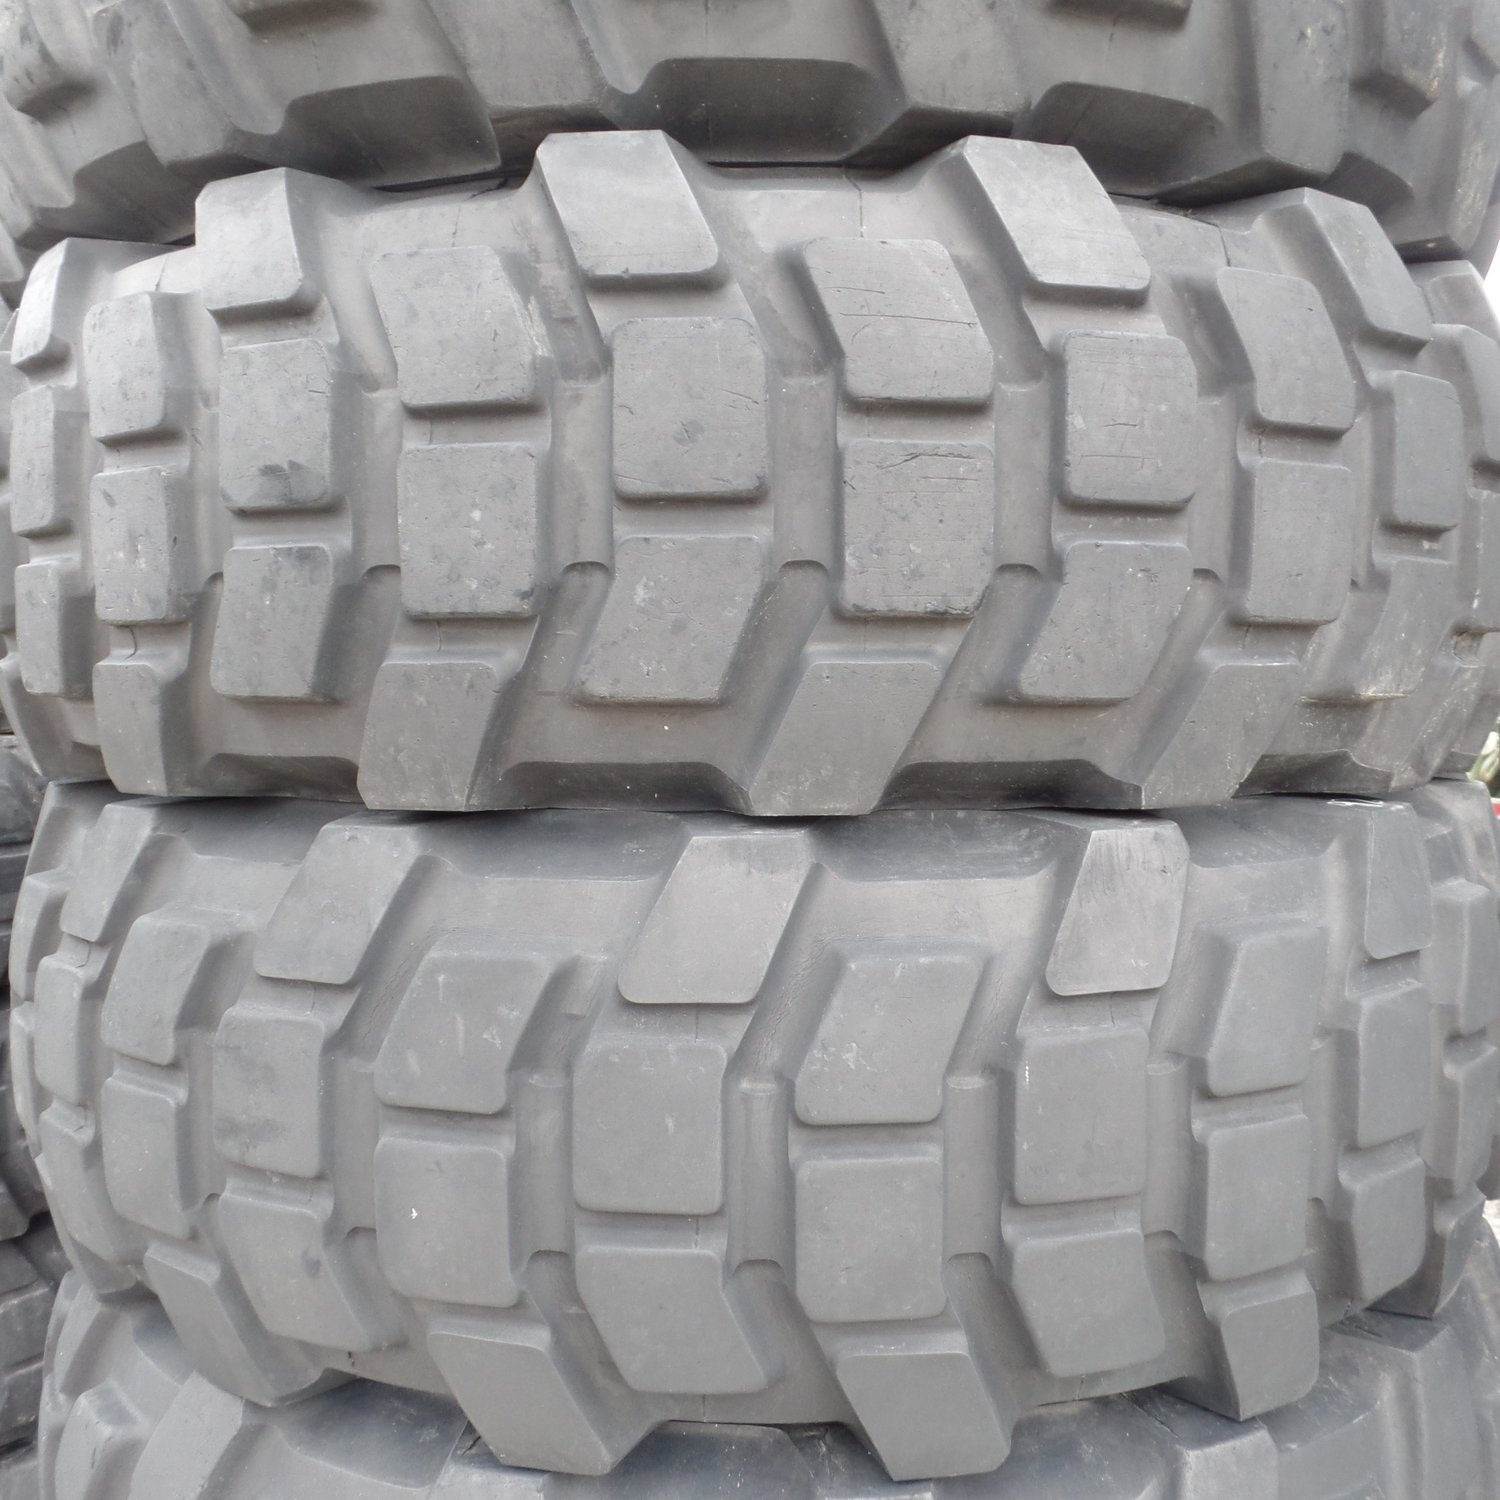 Michelin 1400 r 20 XL tires around 50% Tread